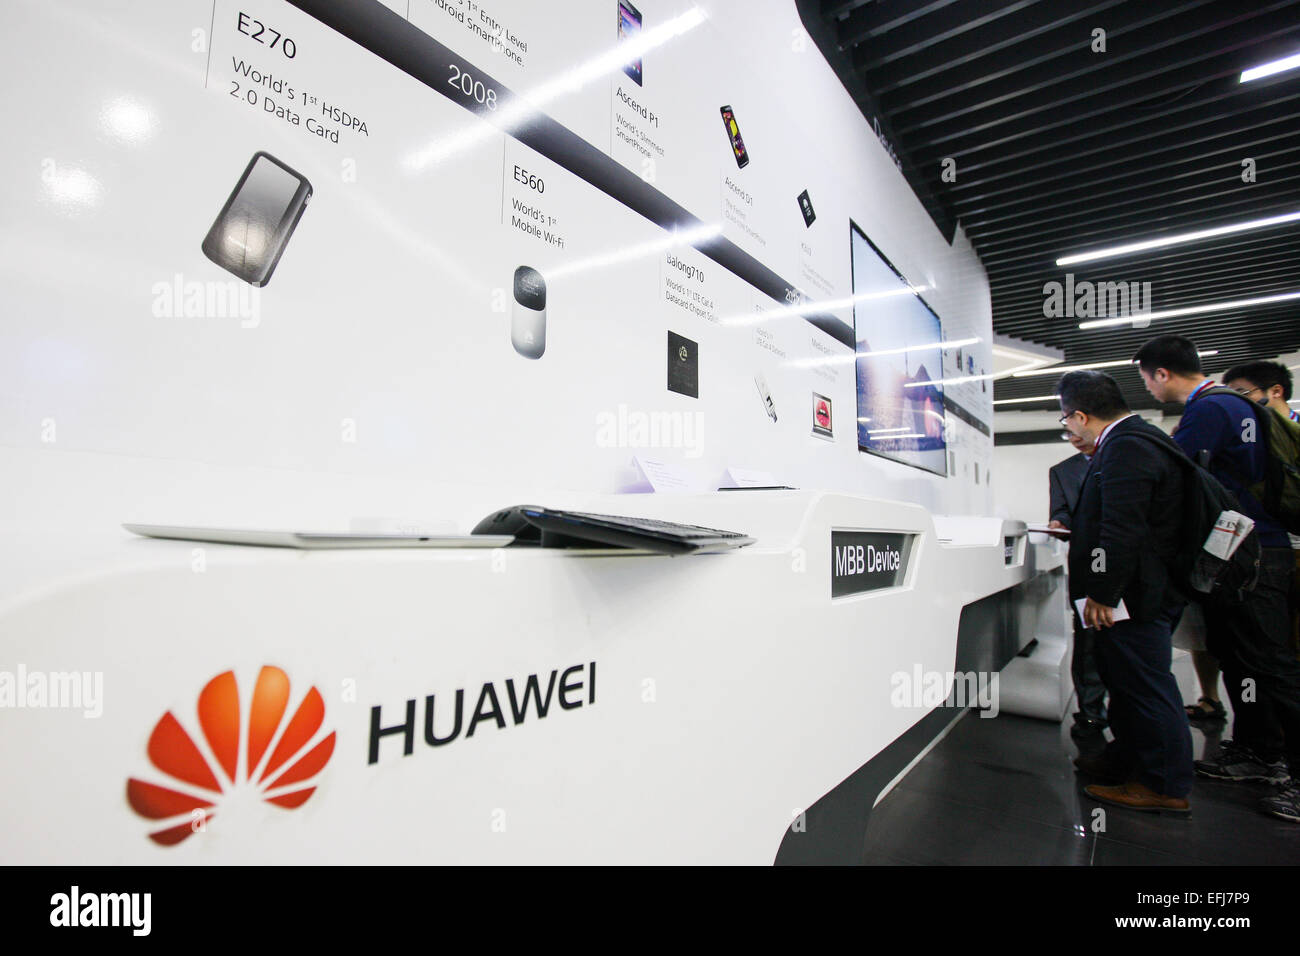 (150205) -- BENGALURU, Feb. 5, 2015 (Xinhua) -- Visitors watch the products of Huawei at Huawei's new research and Stock Photo